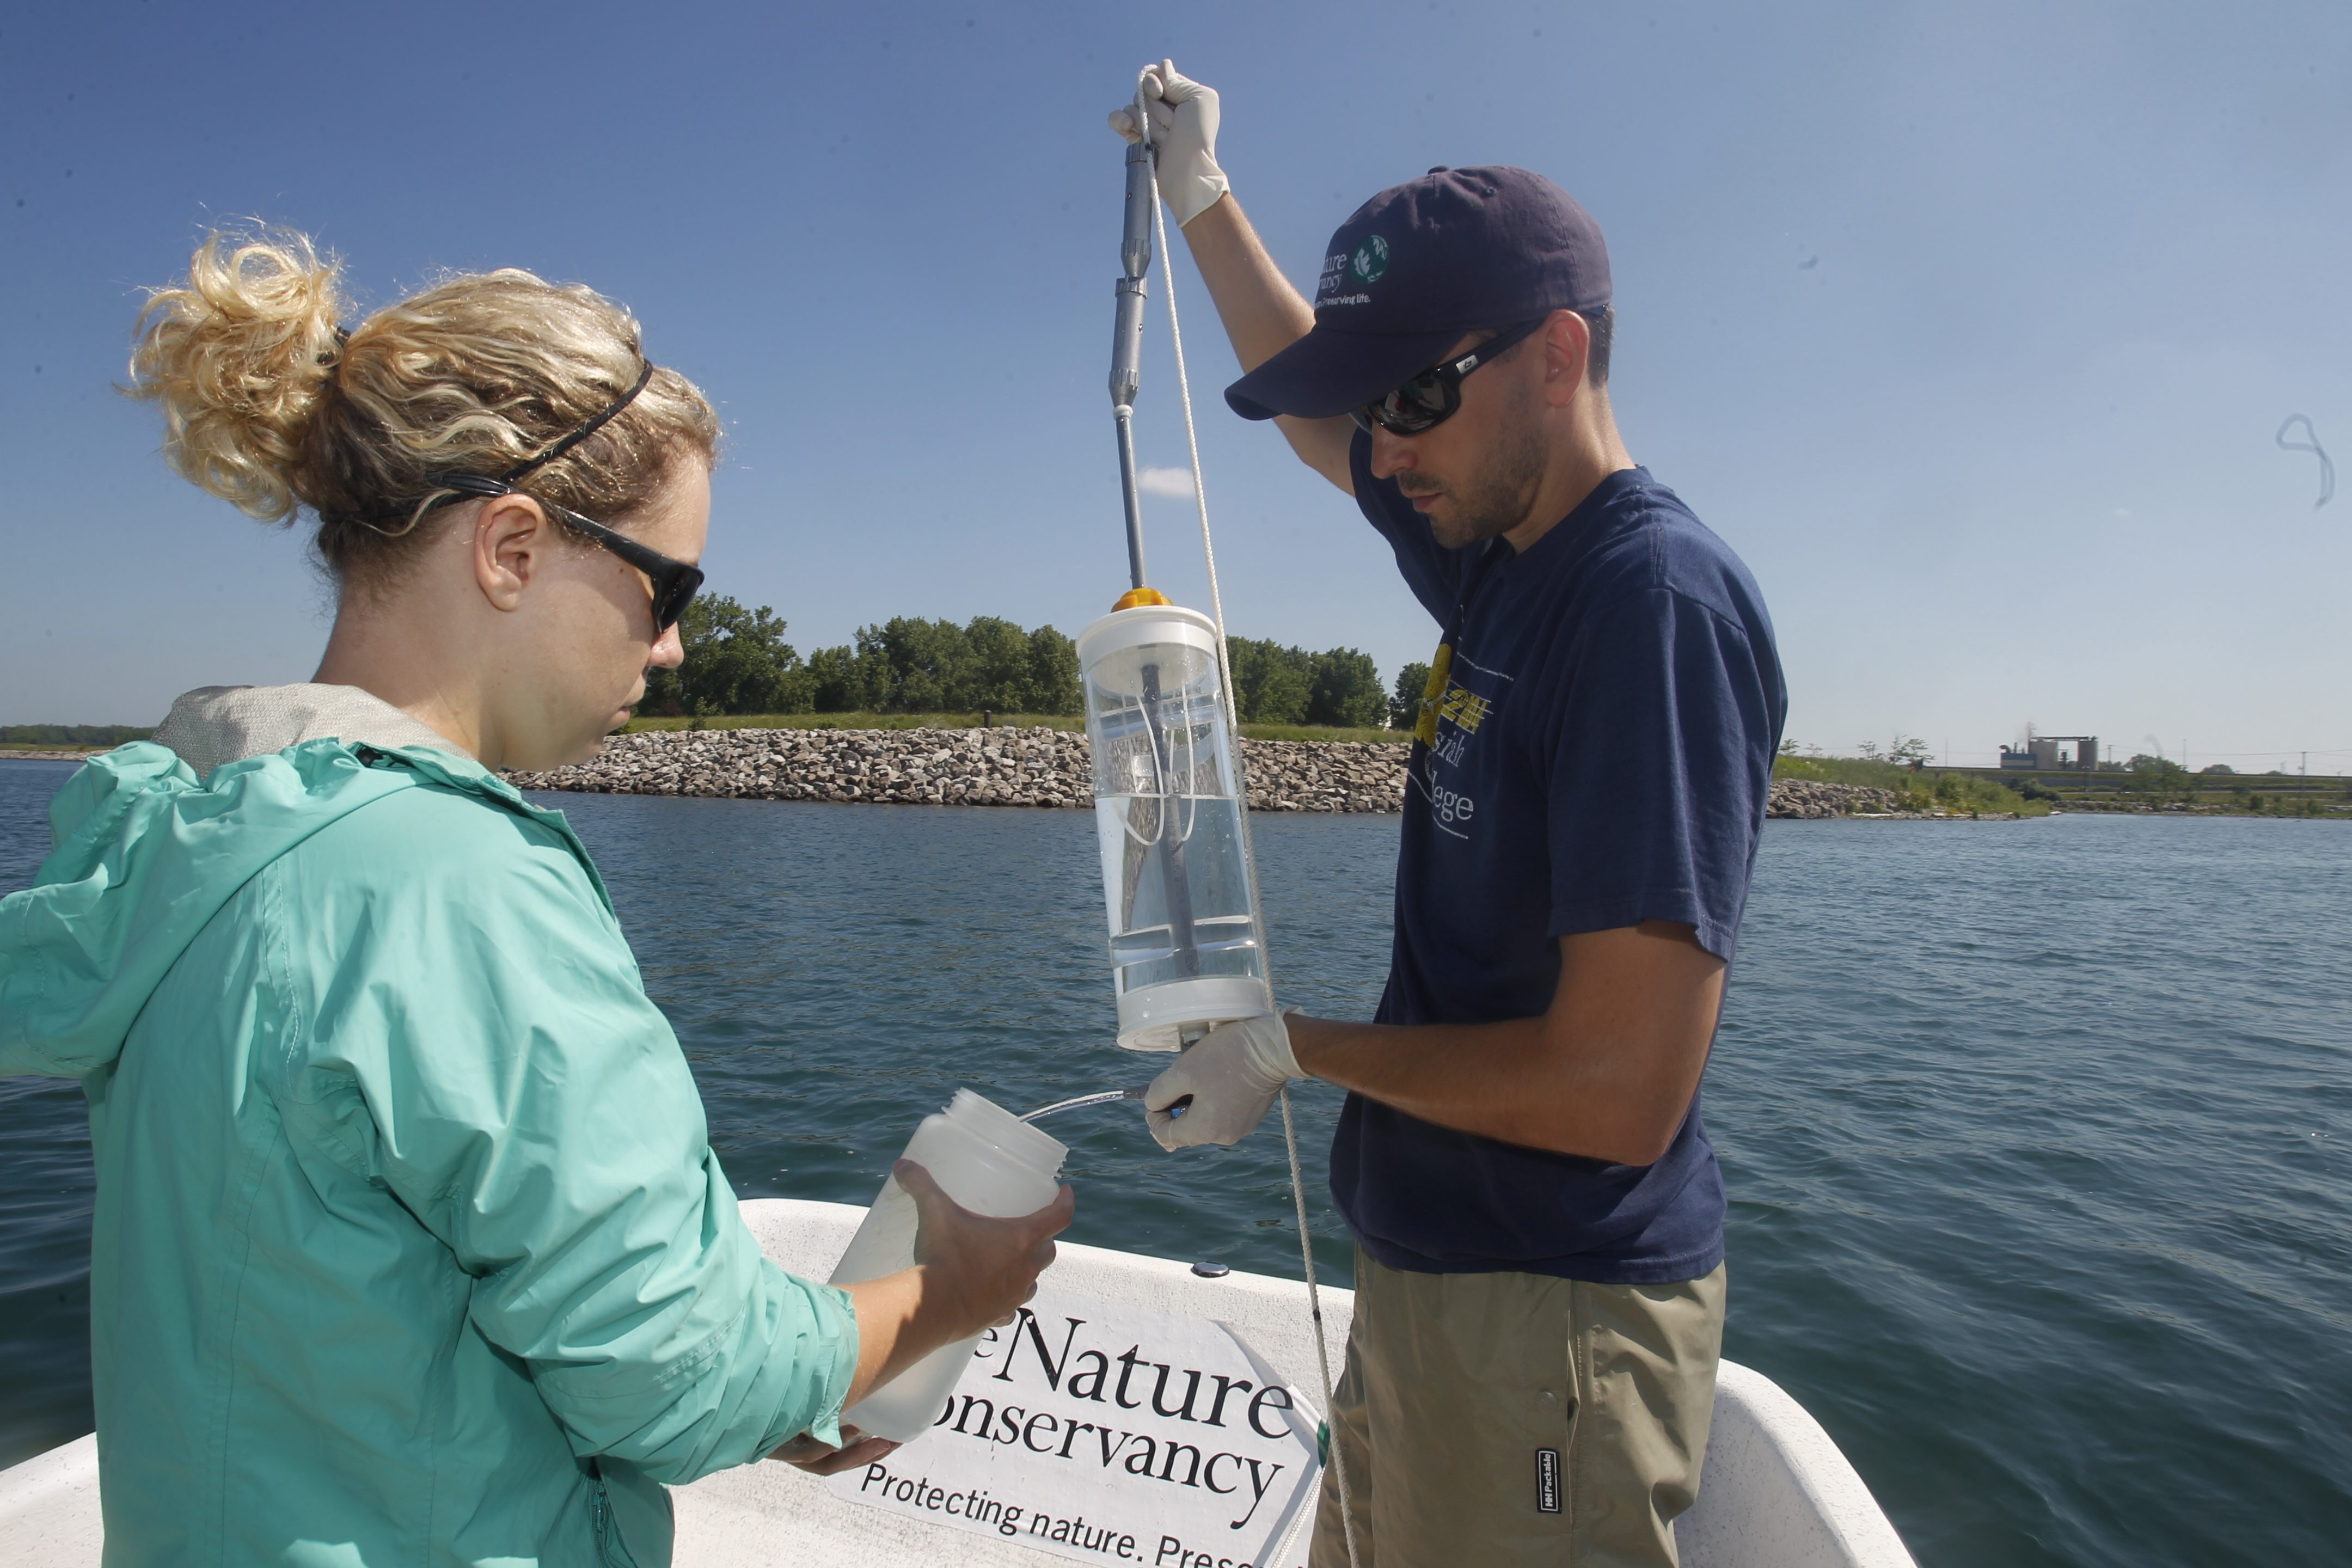 Andrew Tucker, right, an Aquatic Ecologist from the Nature Conservancy's Great Lakes Invasive Species Project, takes water samples with the help of Avril Harder. Up to 50 samples were taken from several parts of the inner harbor Friday.     Left, Travis Schepker, a biology intern, holds an Asian carp pulled from the Illinois River near Havana, Ill.